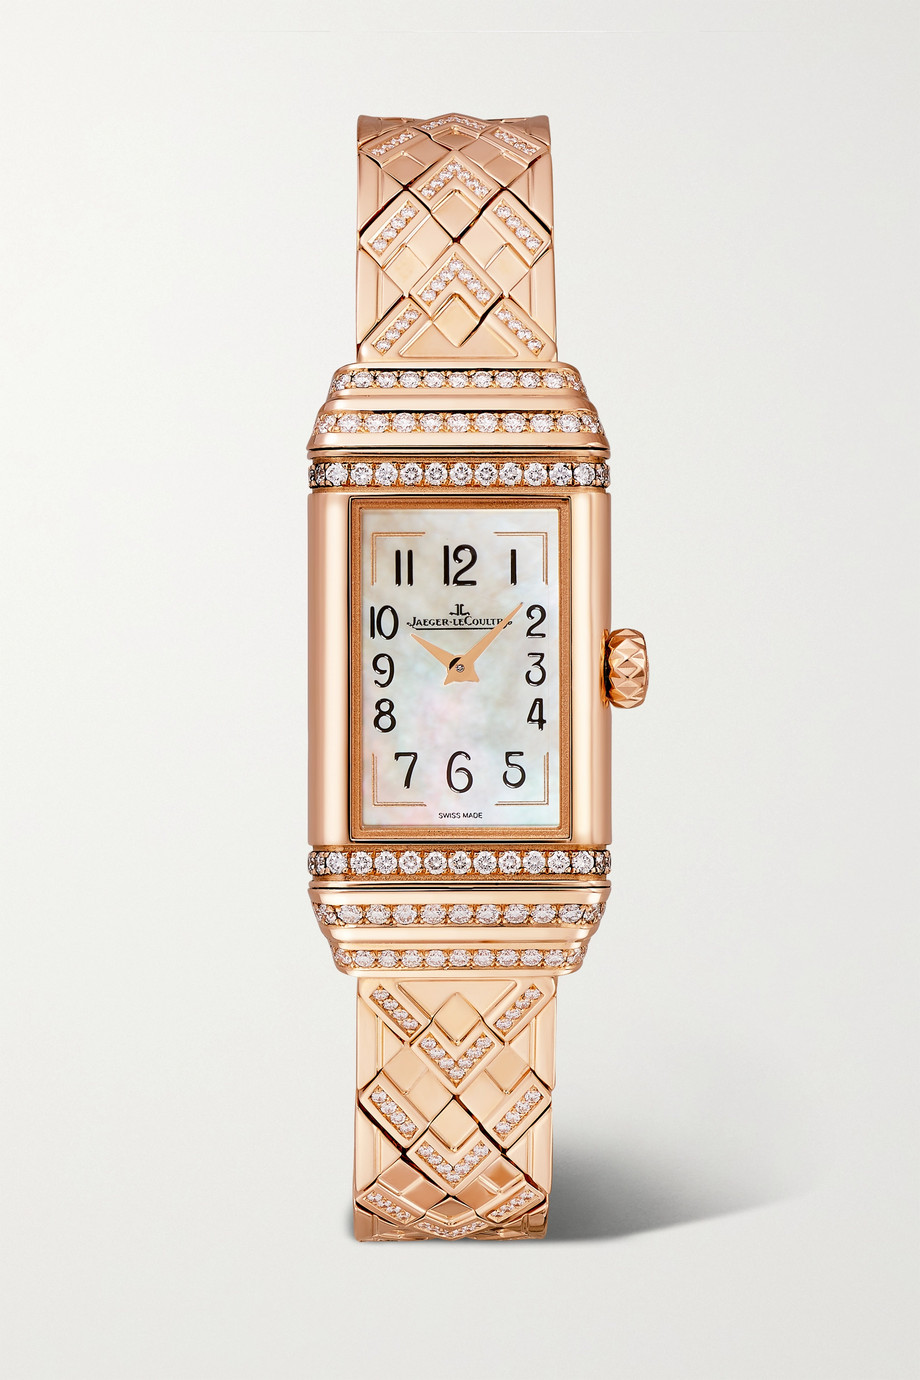 Jaeger-LeCoultre Montre à remontage manuel en or rose et diamants Reverso One Duetto 18 mm